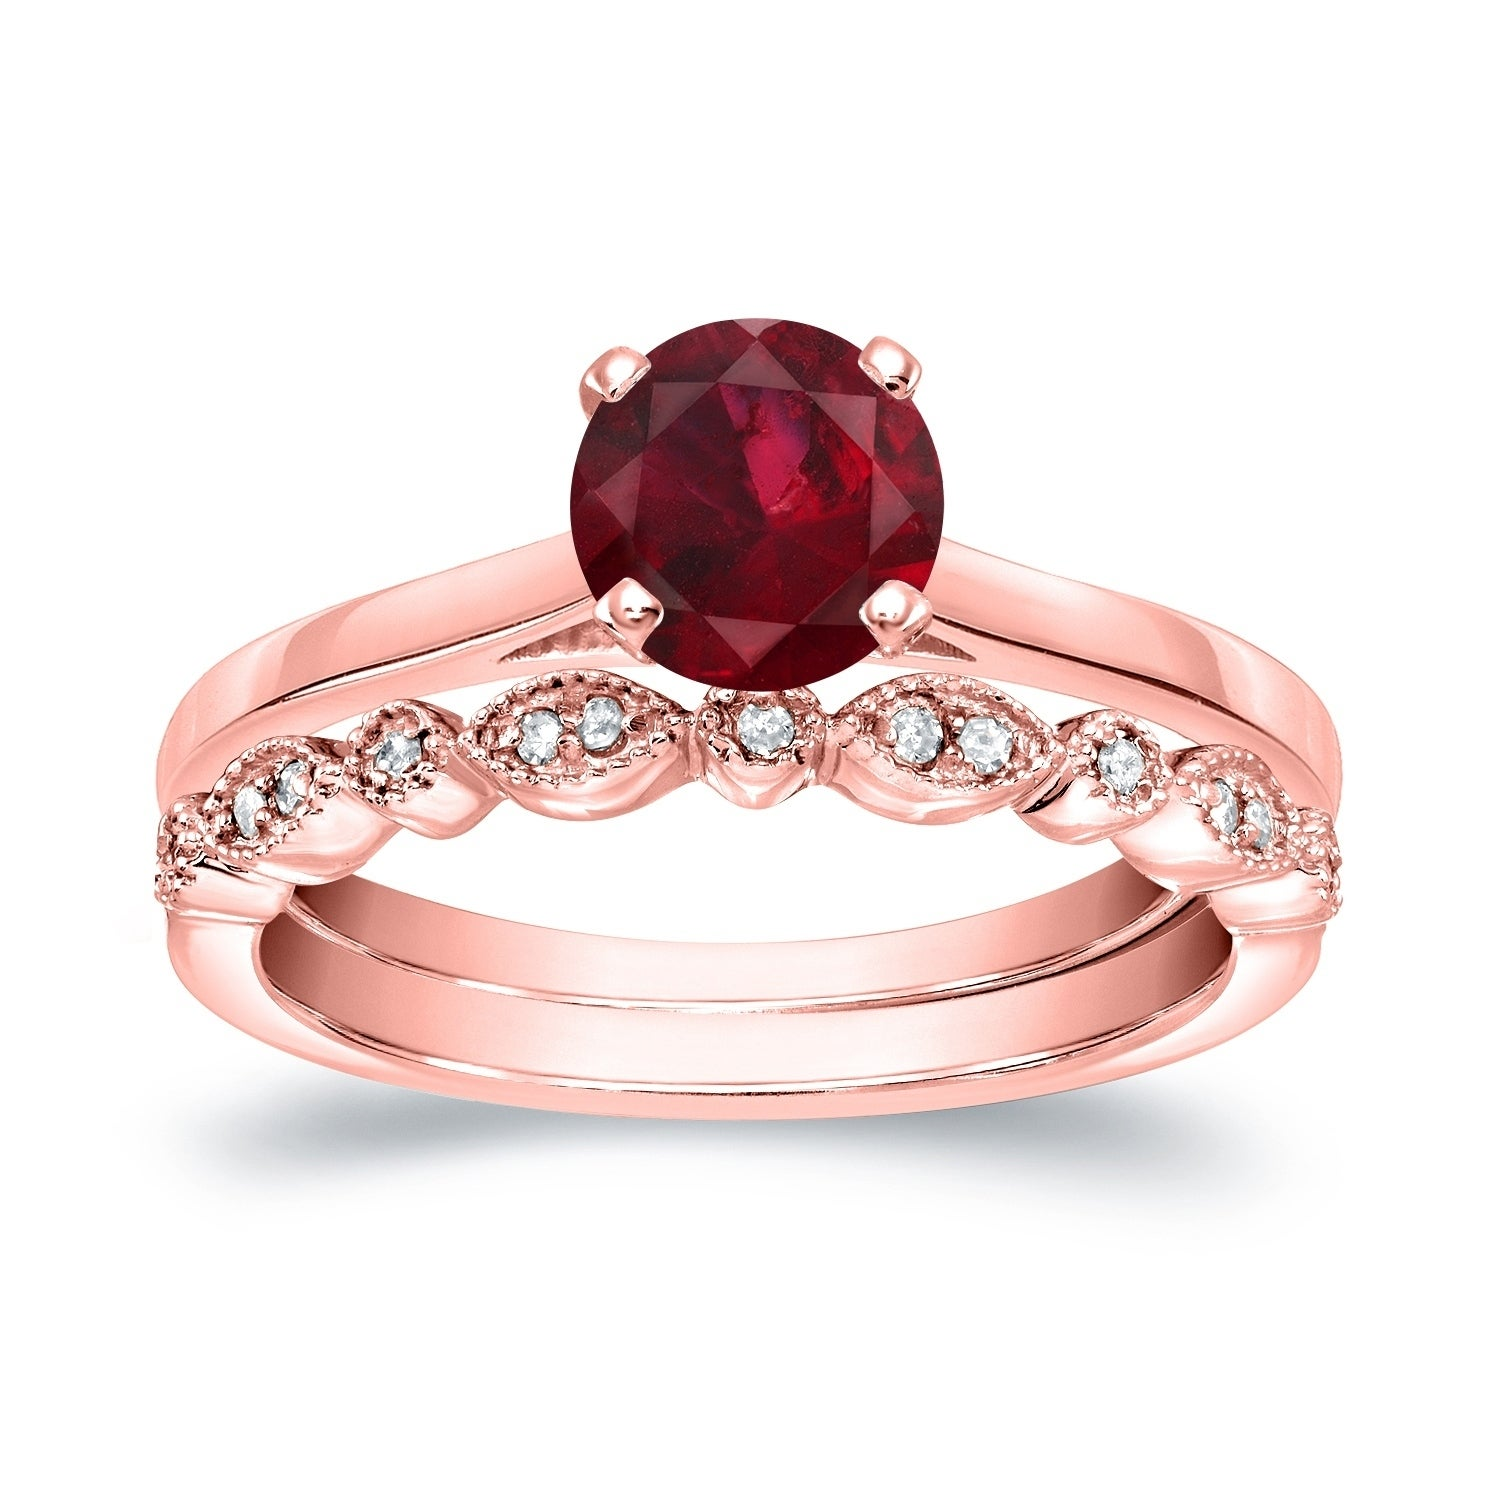 Buy Red Diamond Rings Online at Overstock.com | Our Best Rings Deals